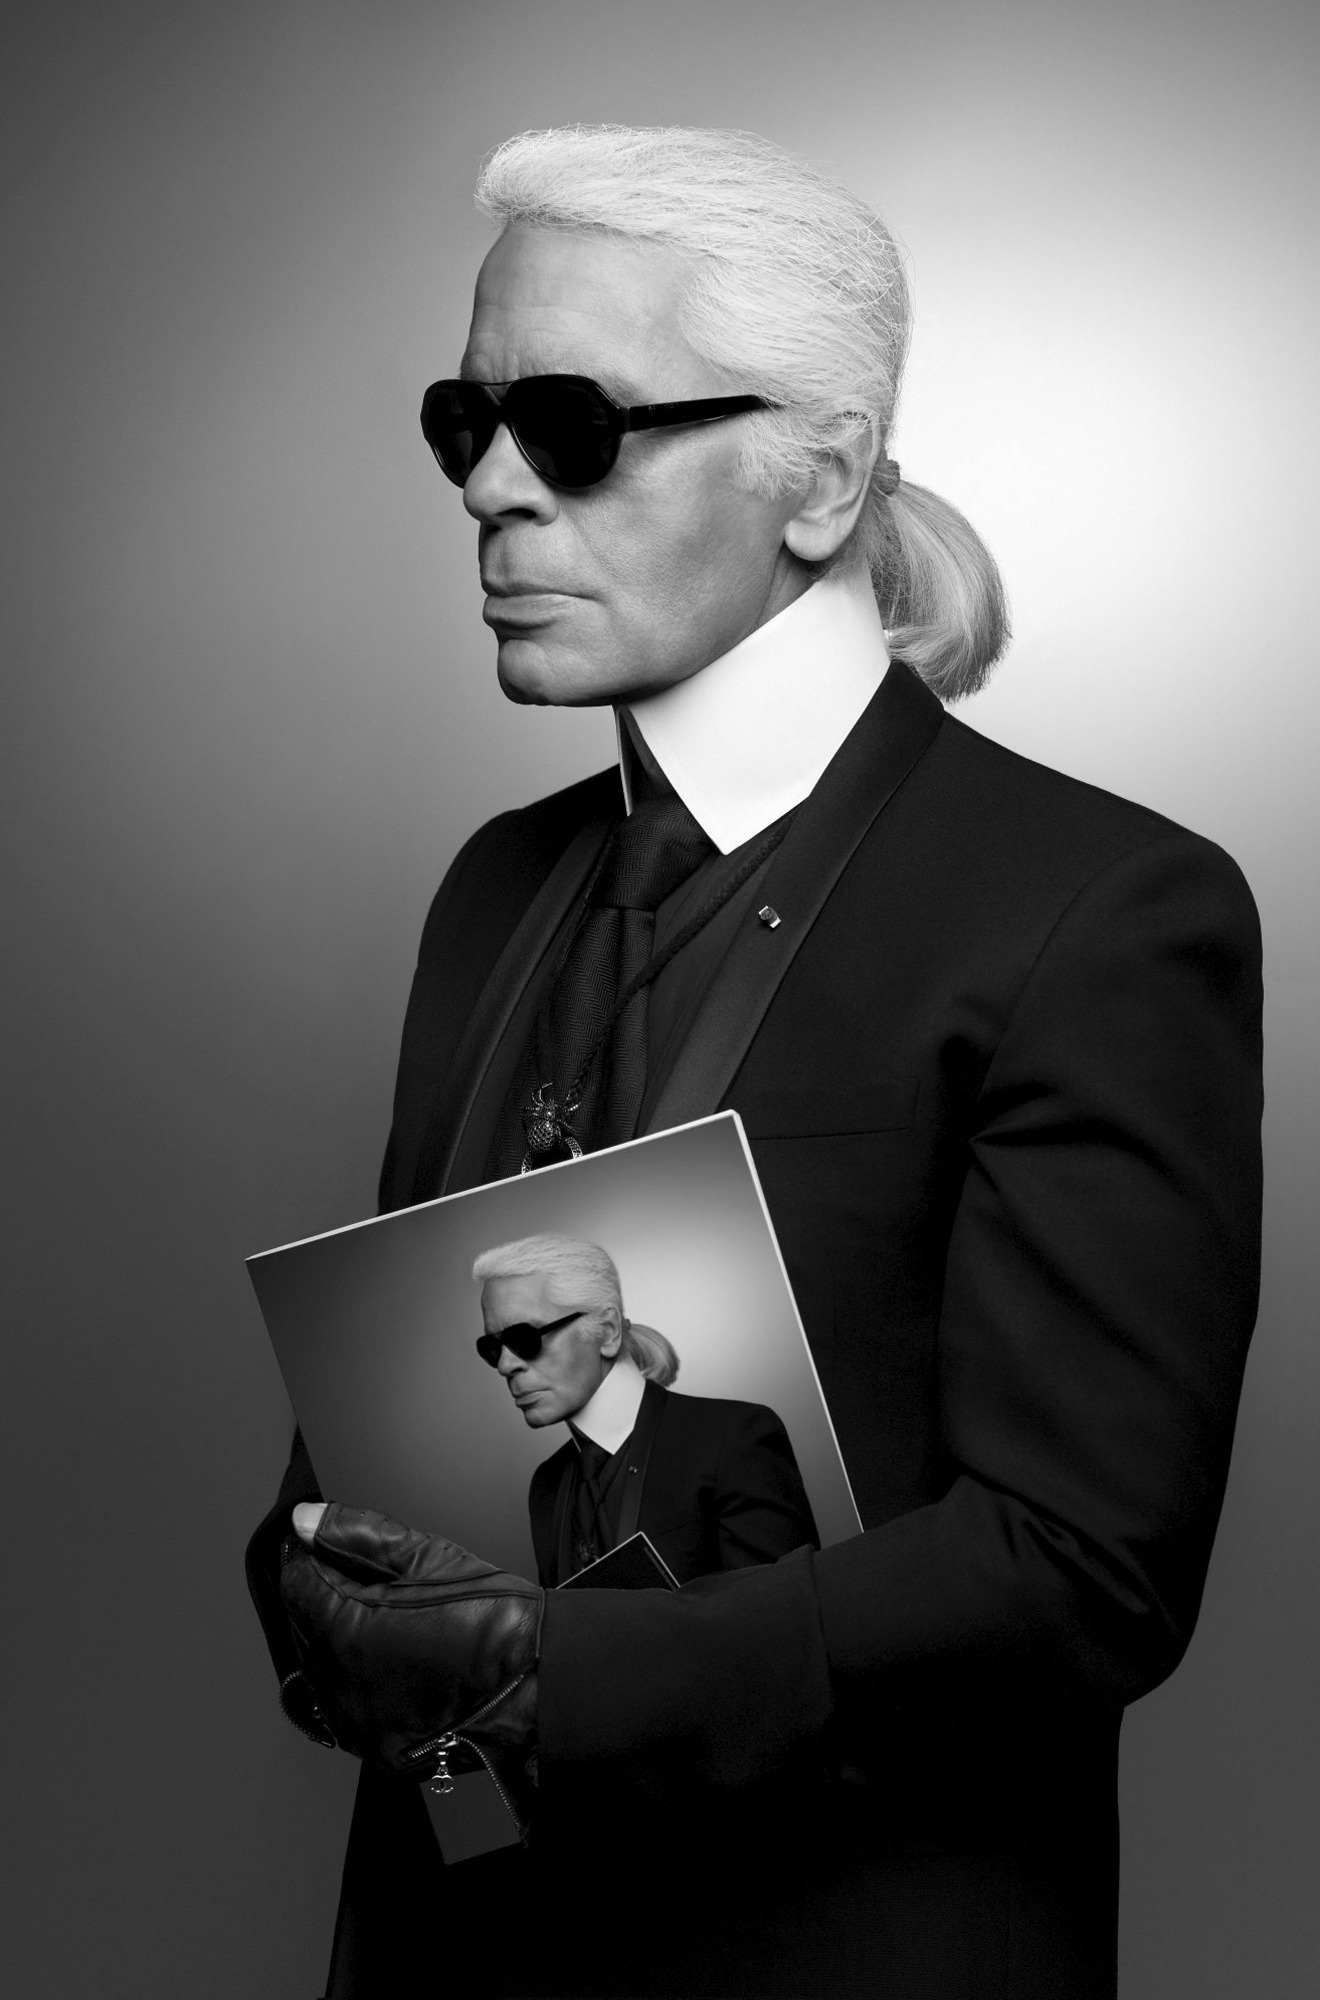 K.Lagerfeld, autoritratto © Photography by Karl Lagerfeld